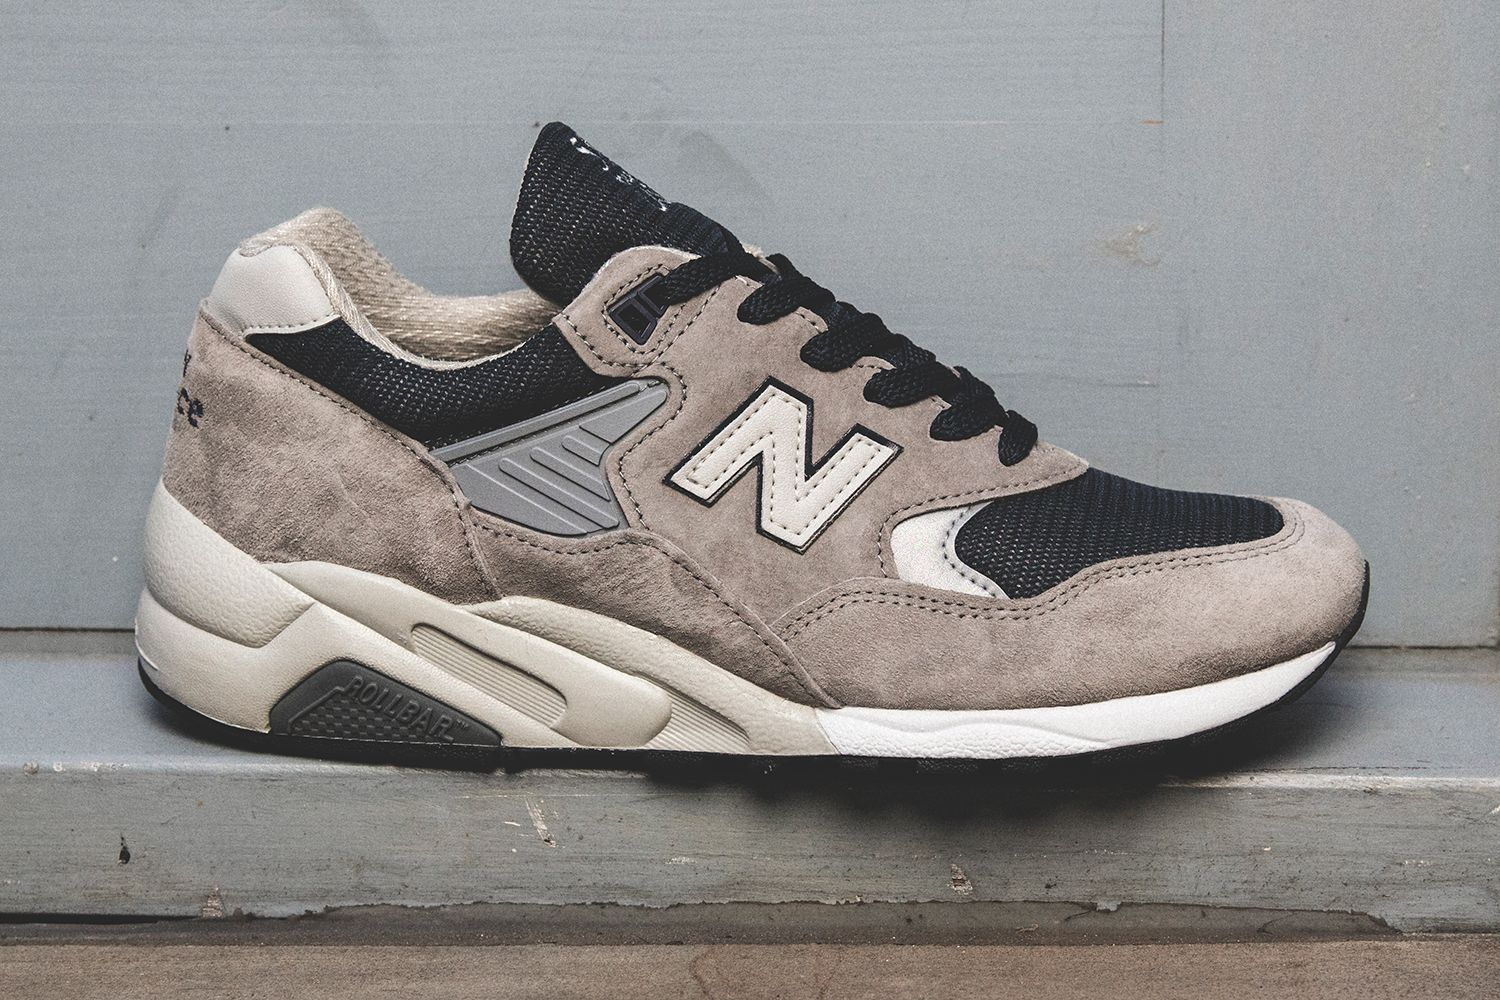 New Balance Reintroduces The M585 Chaussure